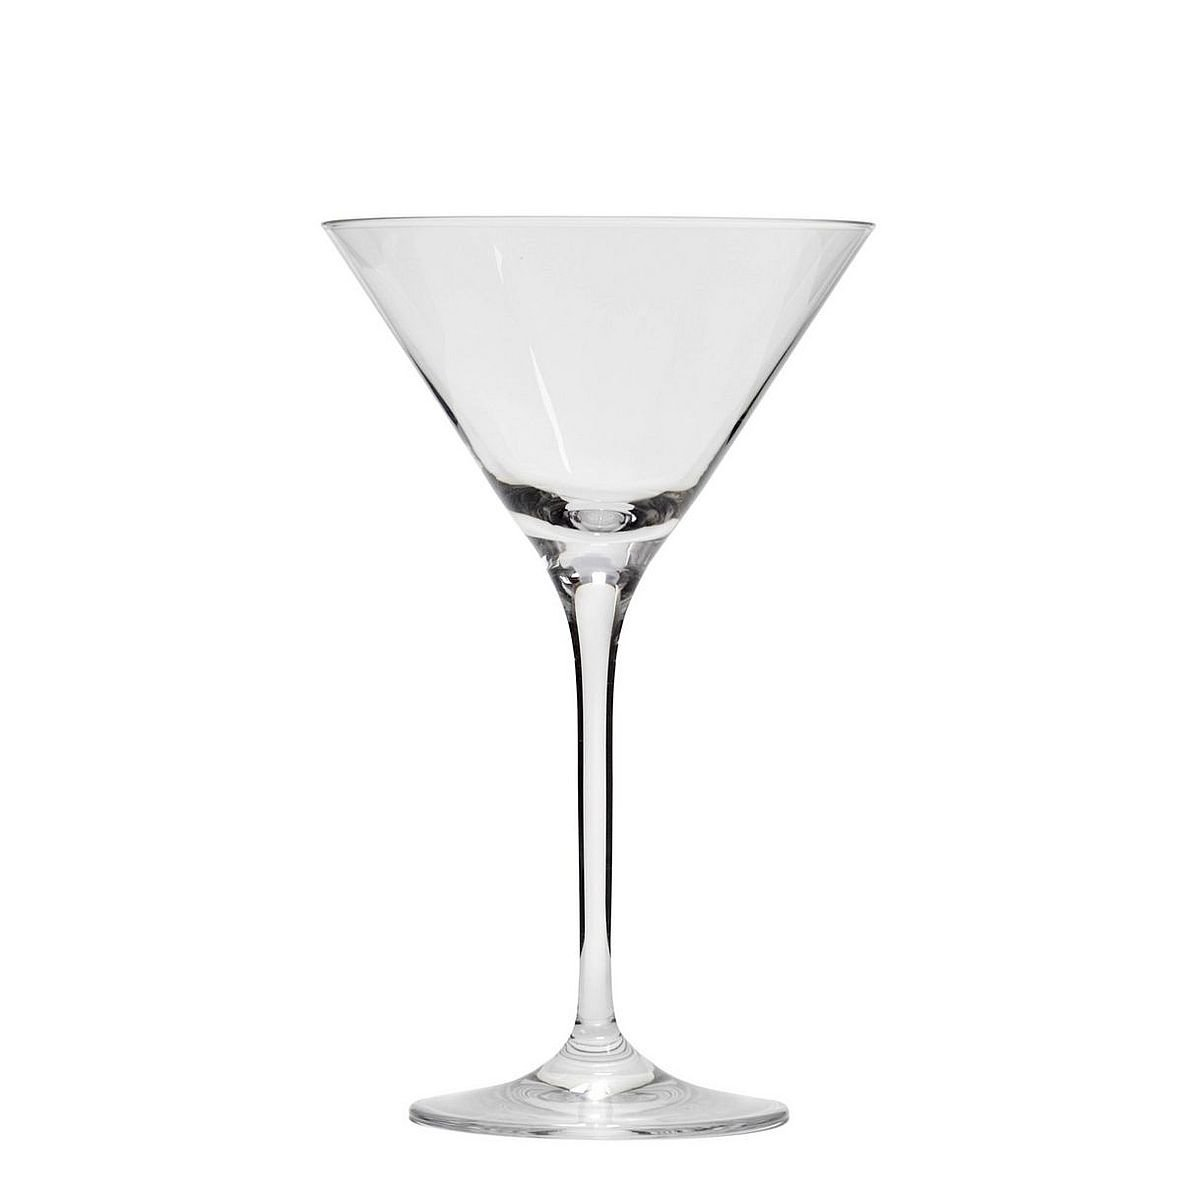 Cocktailgläser cocktail gläser klassisches martiniglas 210ml butlers city